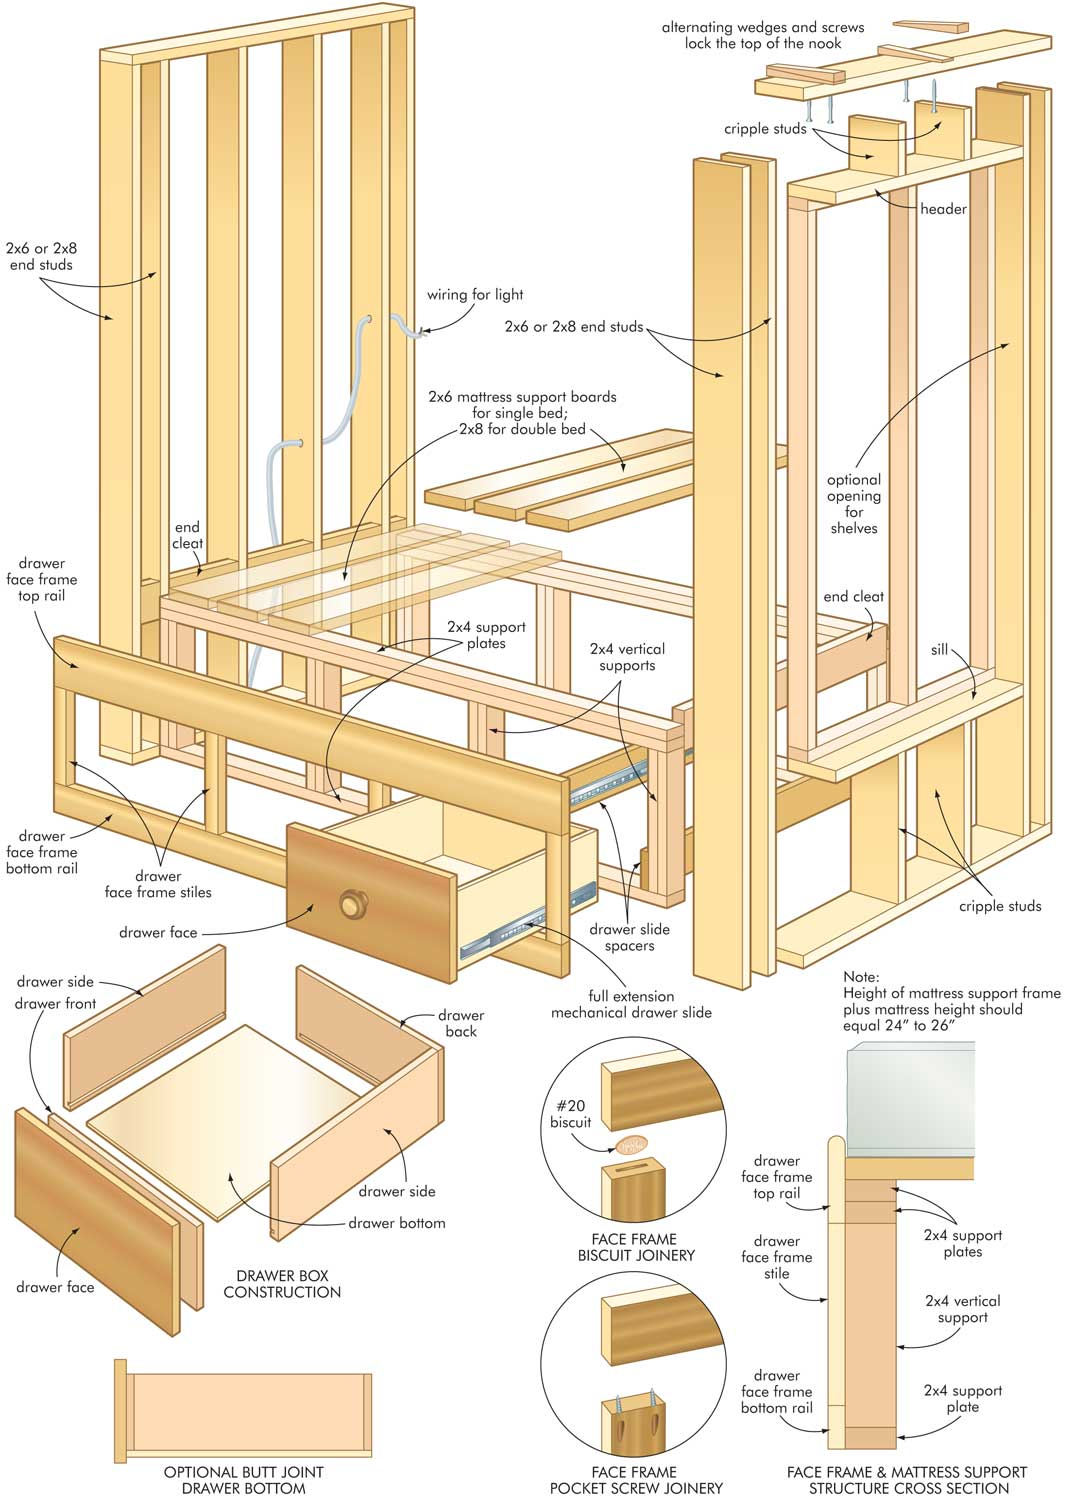 Woodworking building plans pdf woodworking for Build my house plans